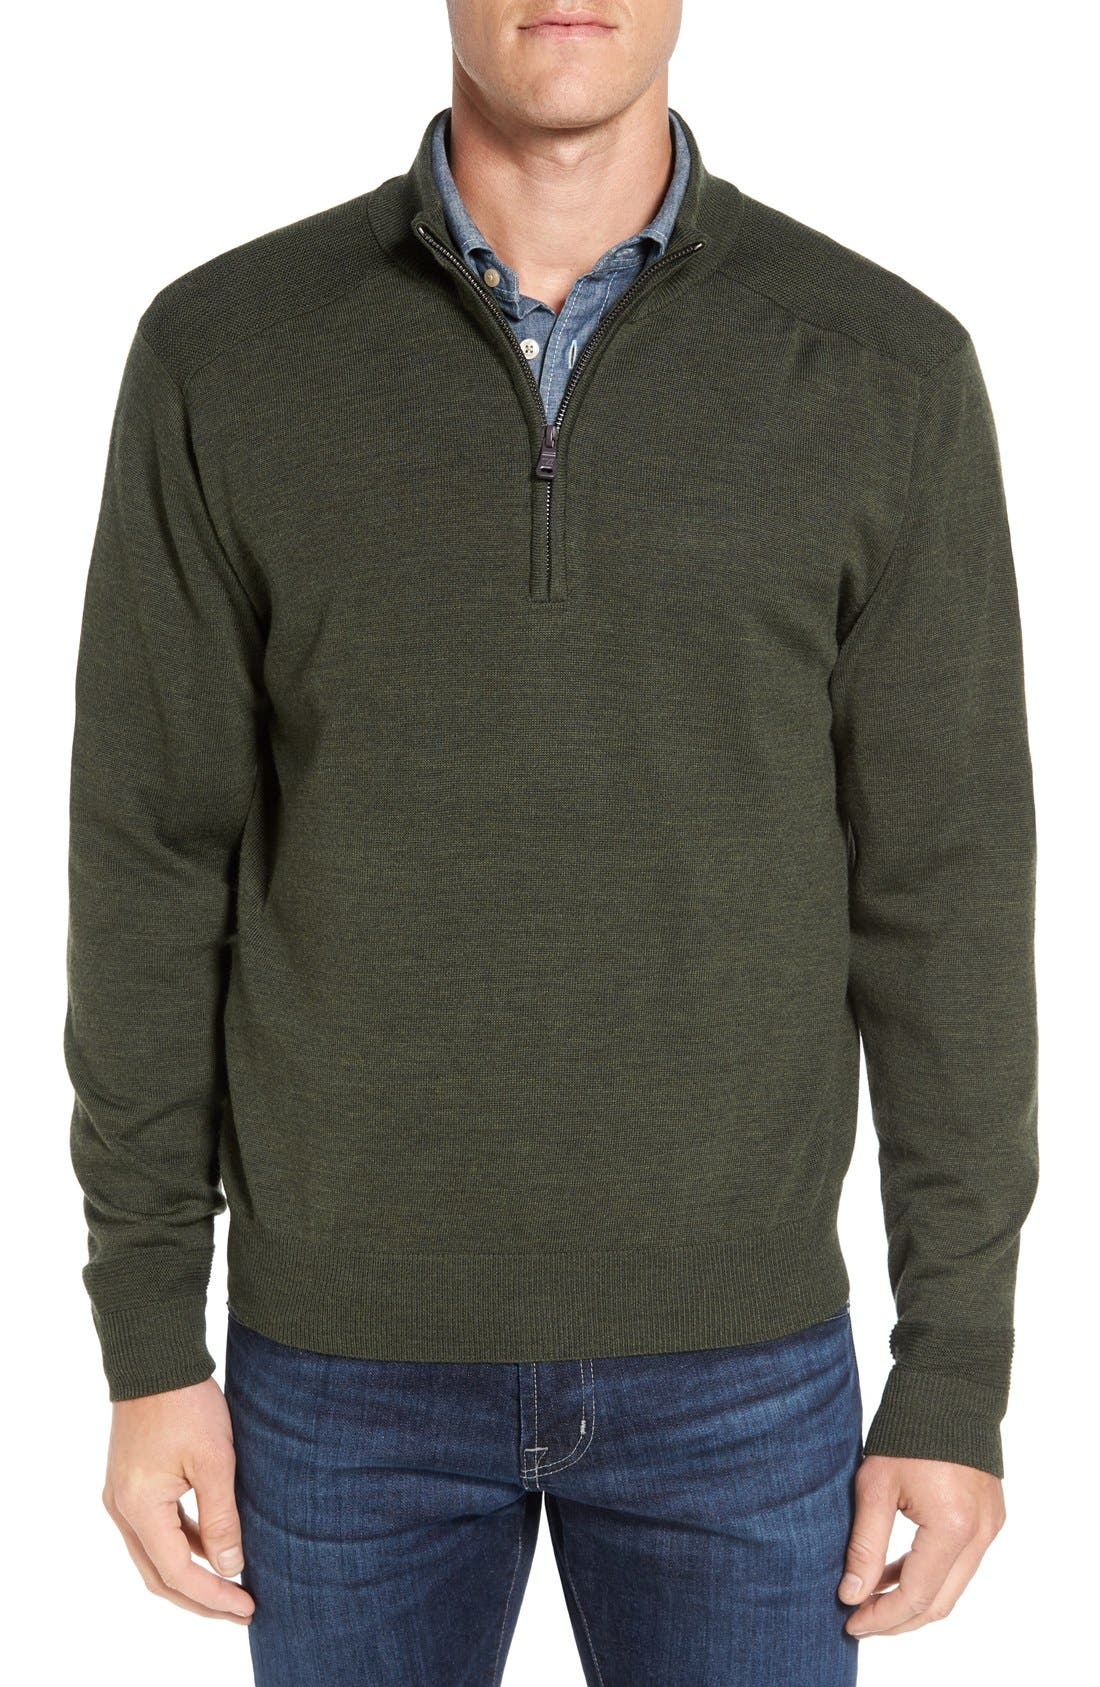 Cutter & Buck Douglas Quarter Zip Wool Blend Sweater